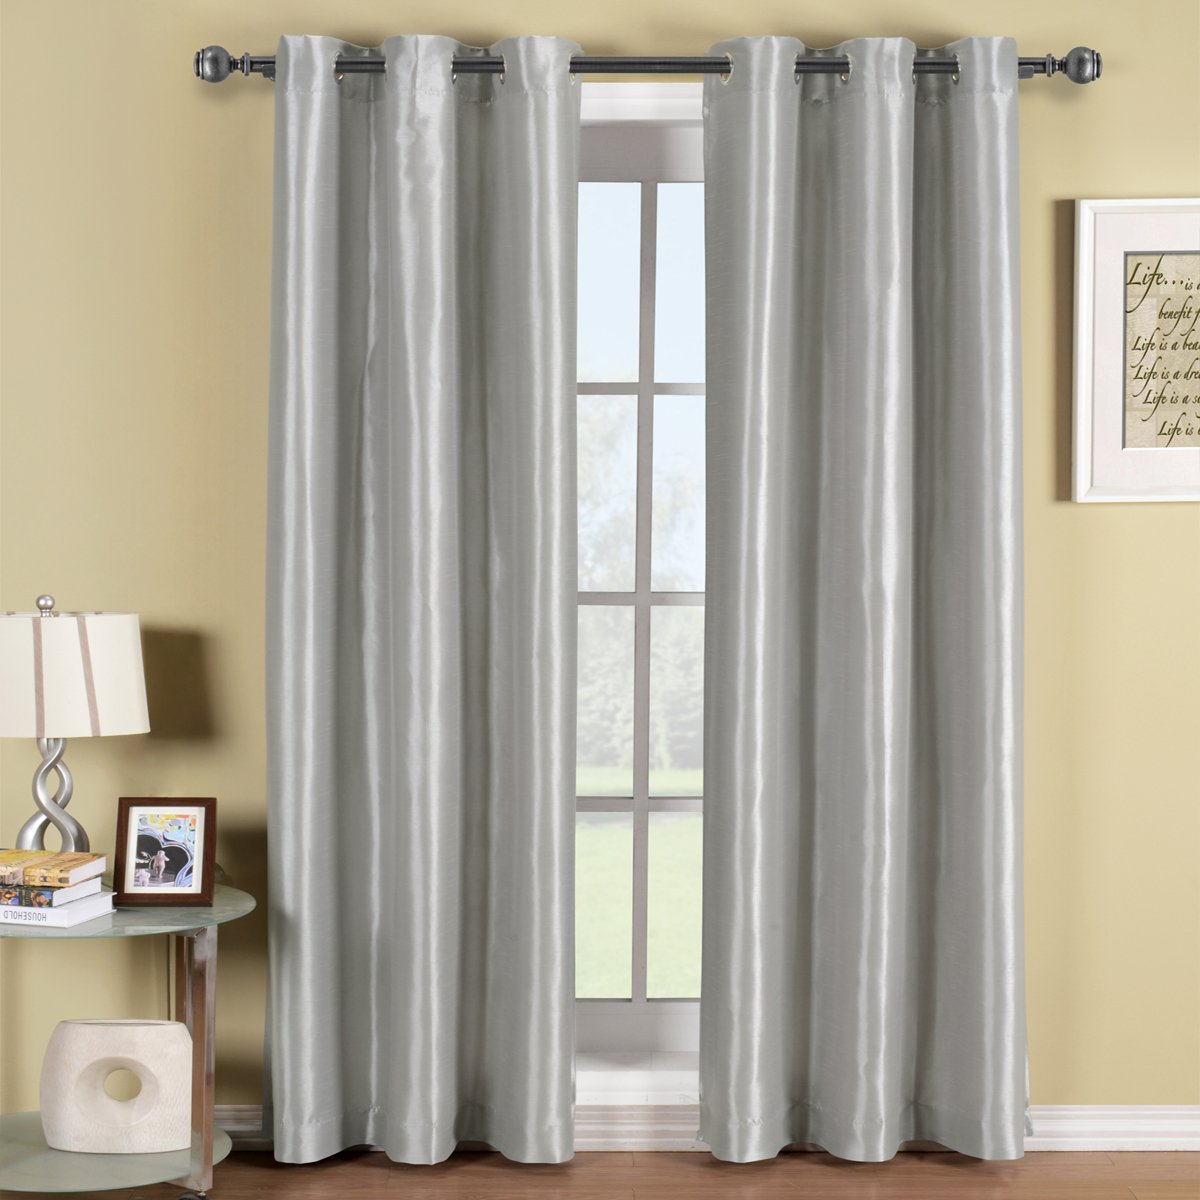 Silver Curtains Drapes Sale Ease Bedding With Style